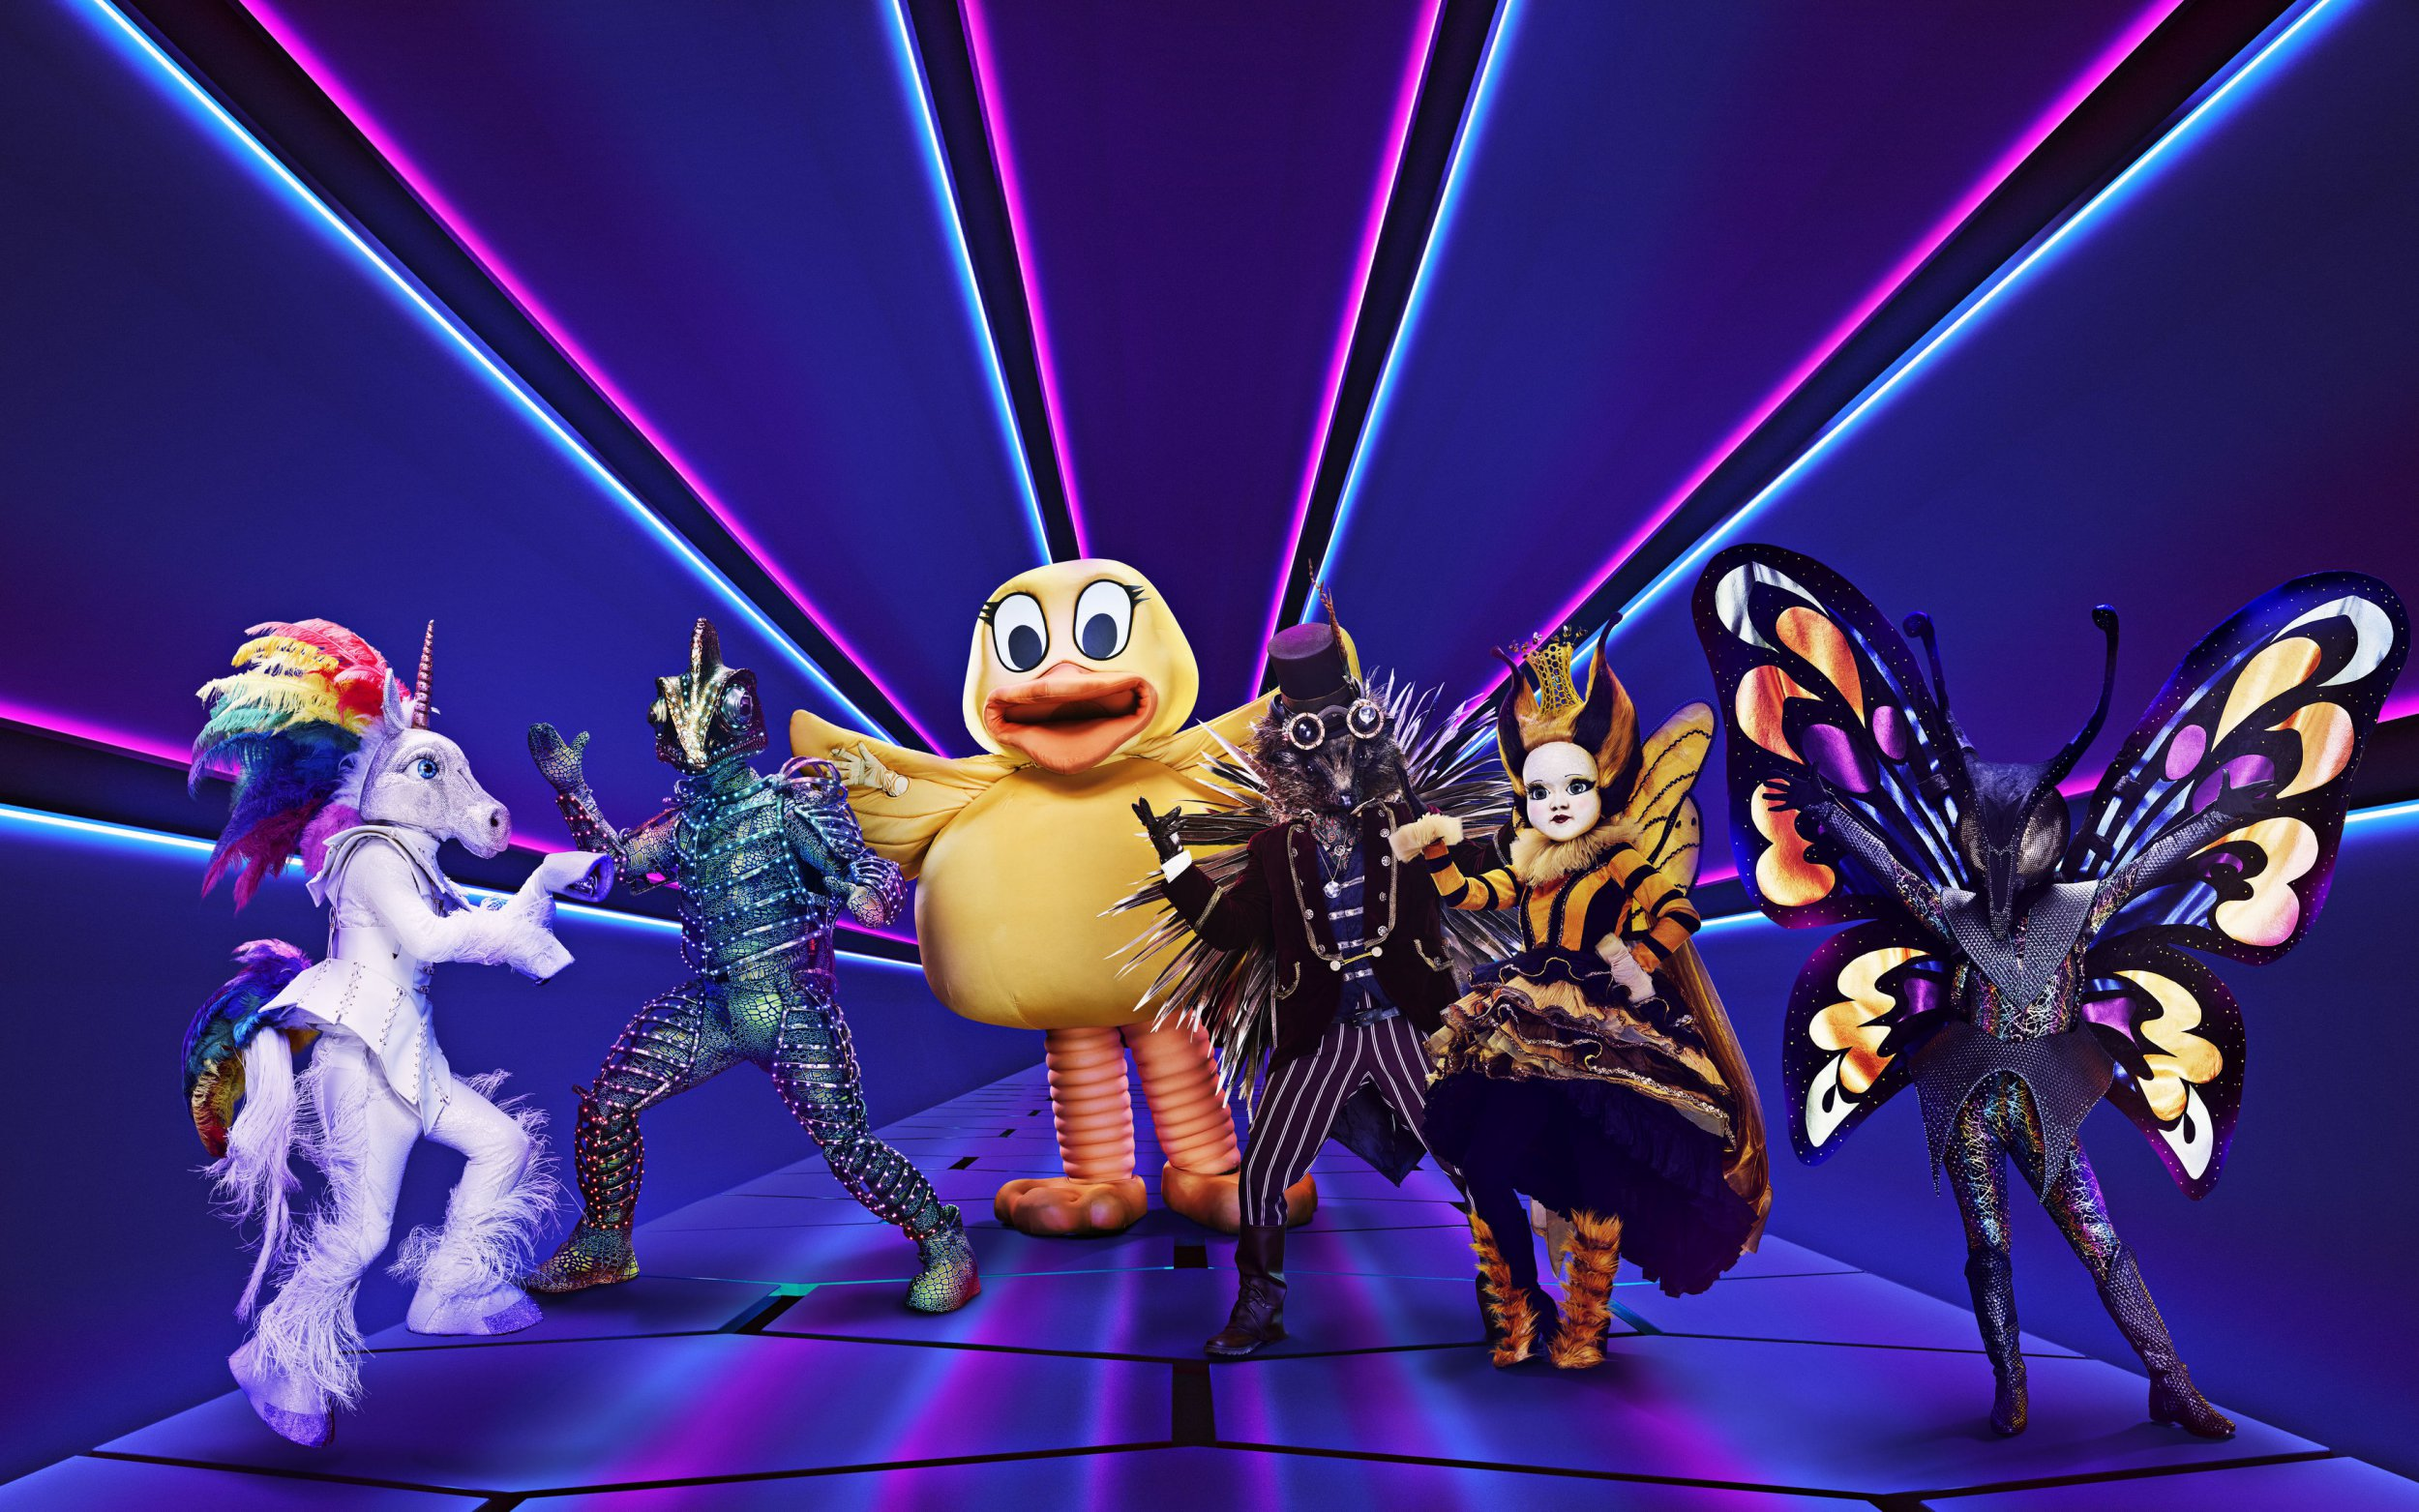 The Masked Singer UK who designs the costumes for the show